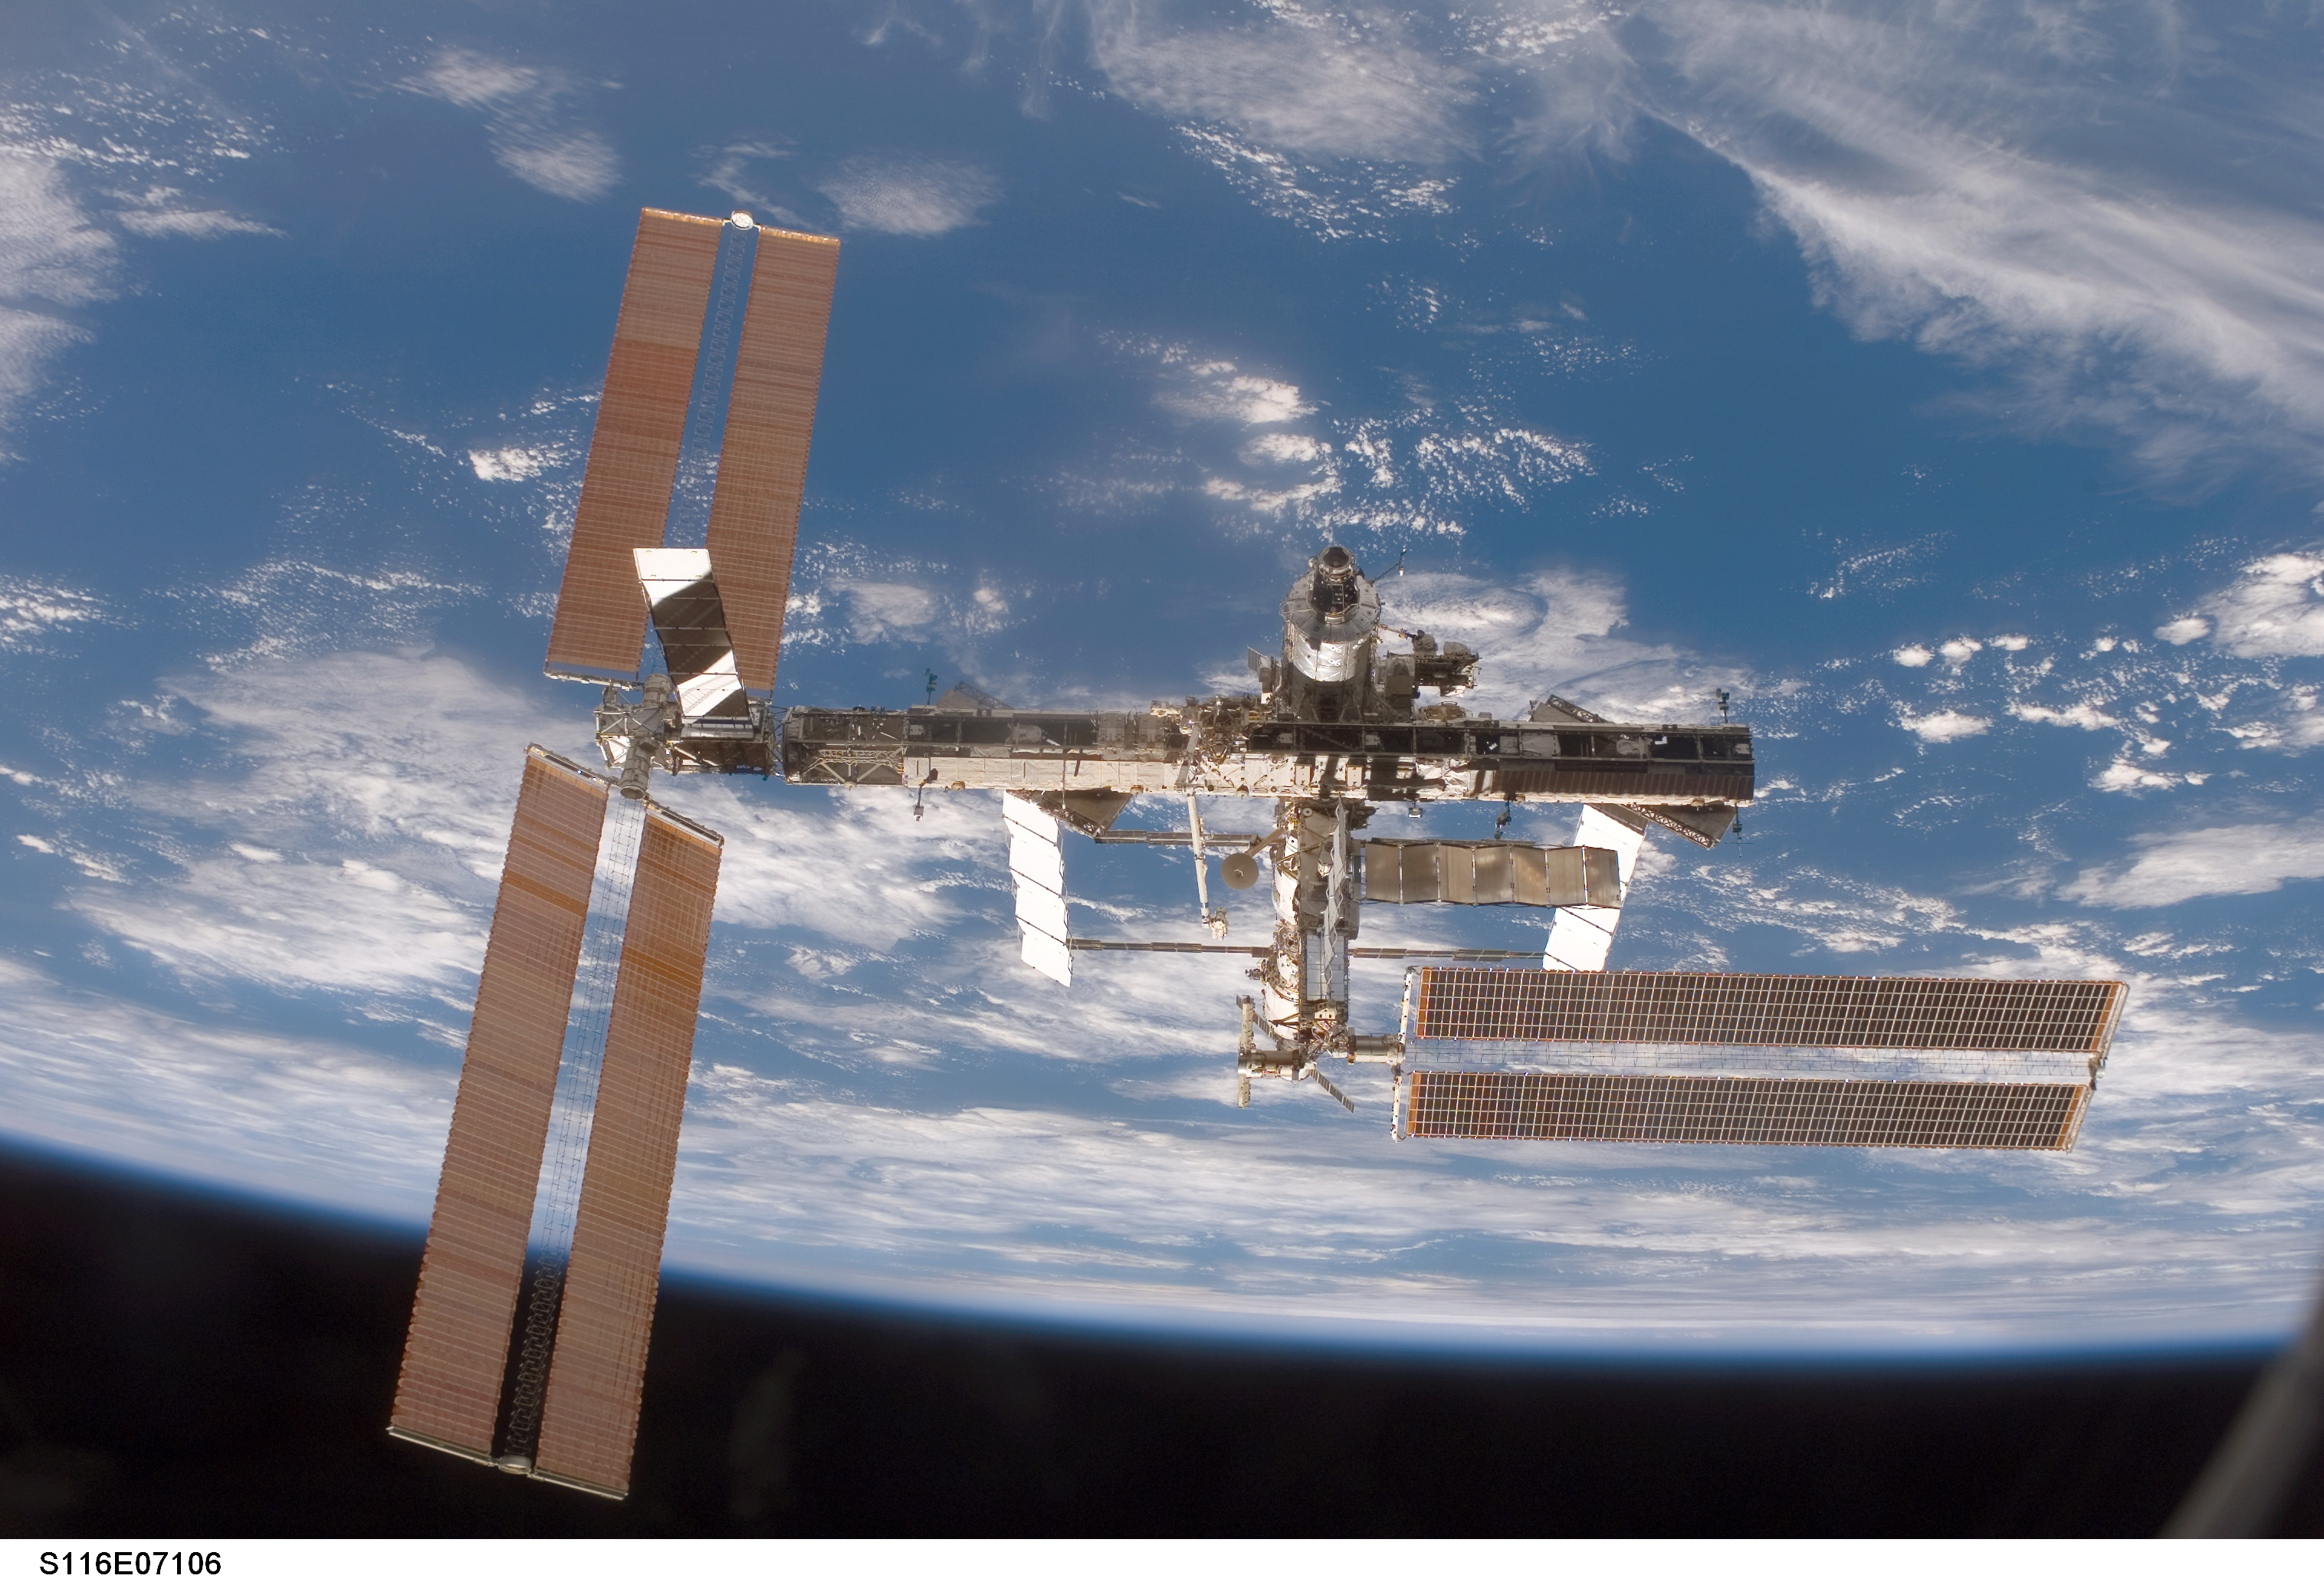 ISS-10